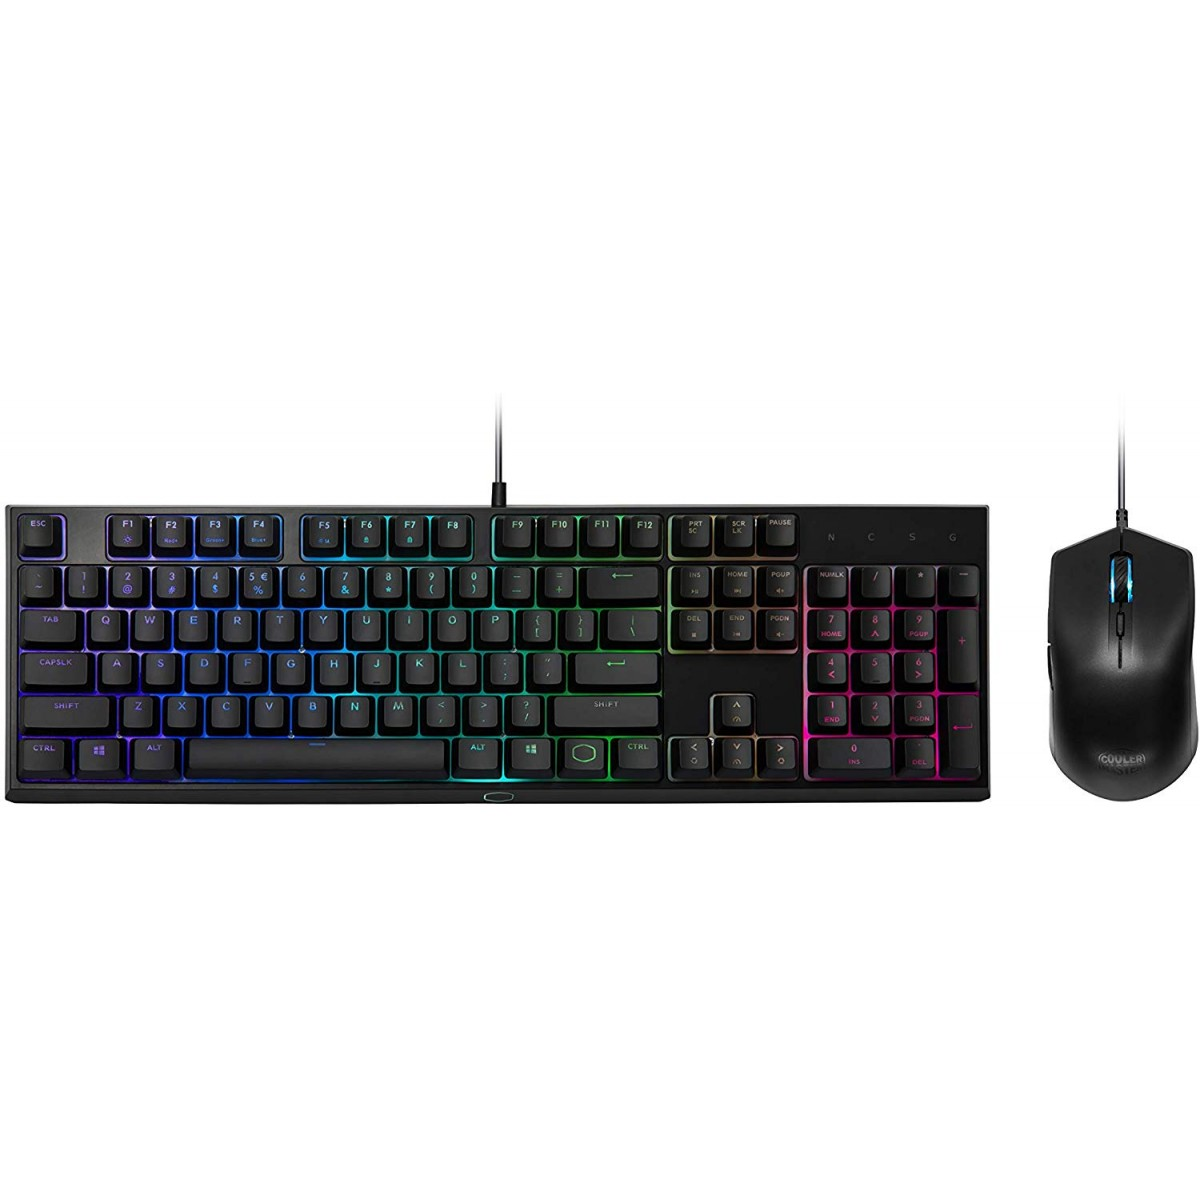 Combo Gamer Teclado e Mouse Cooler Master MS-111, Semi-Mecânico, RGB, MS-111-KKMF1-BR